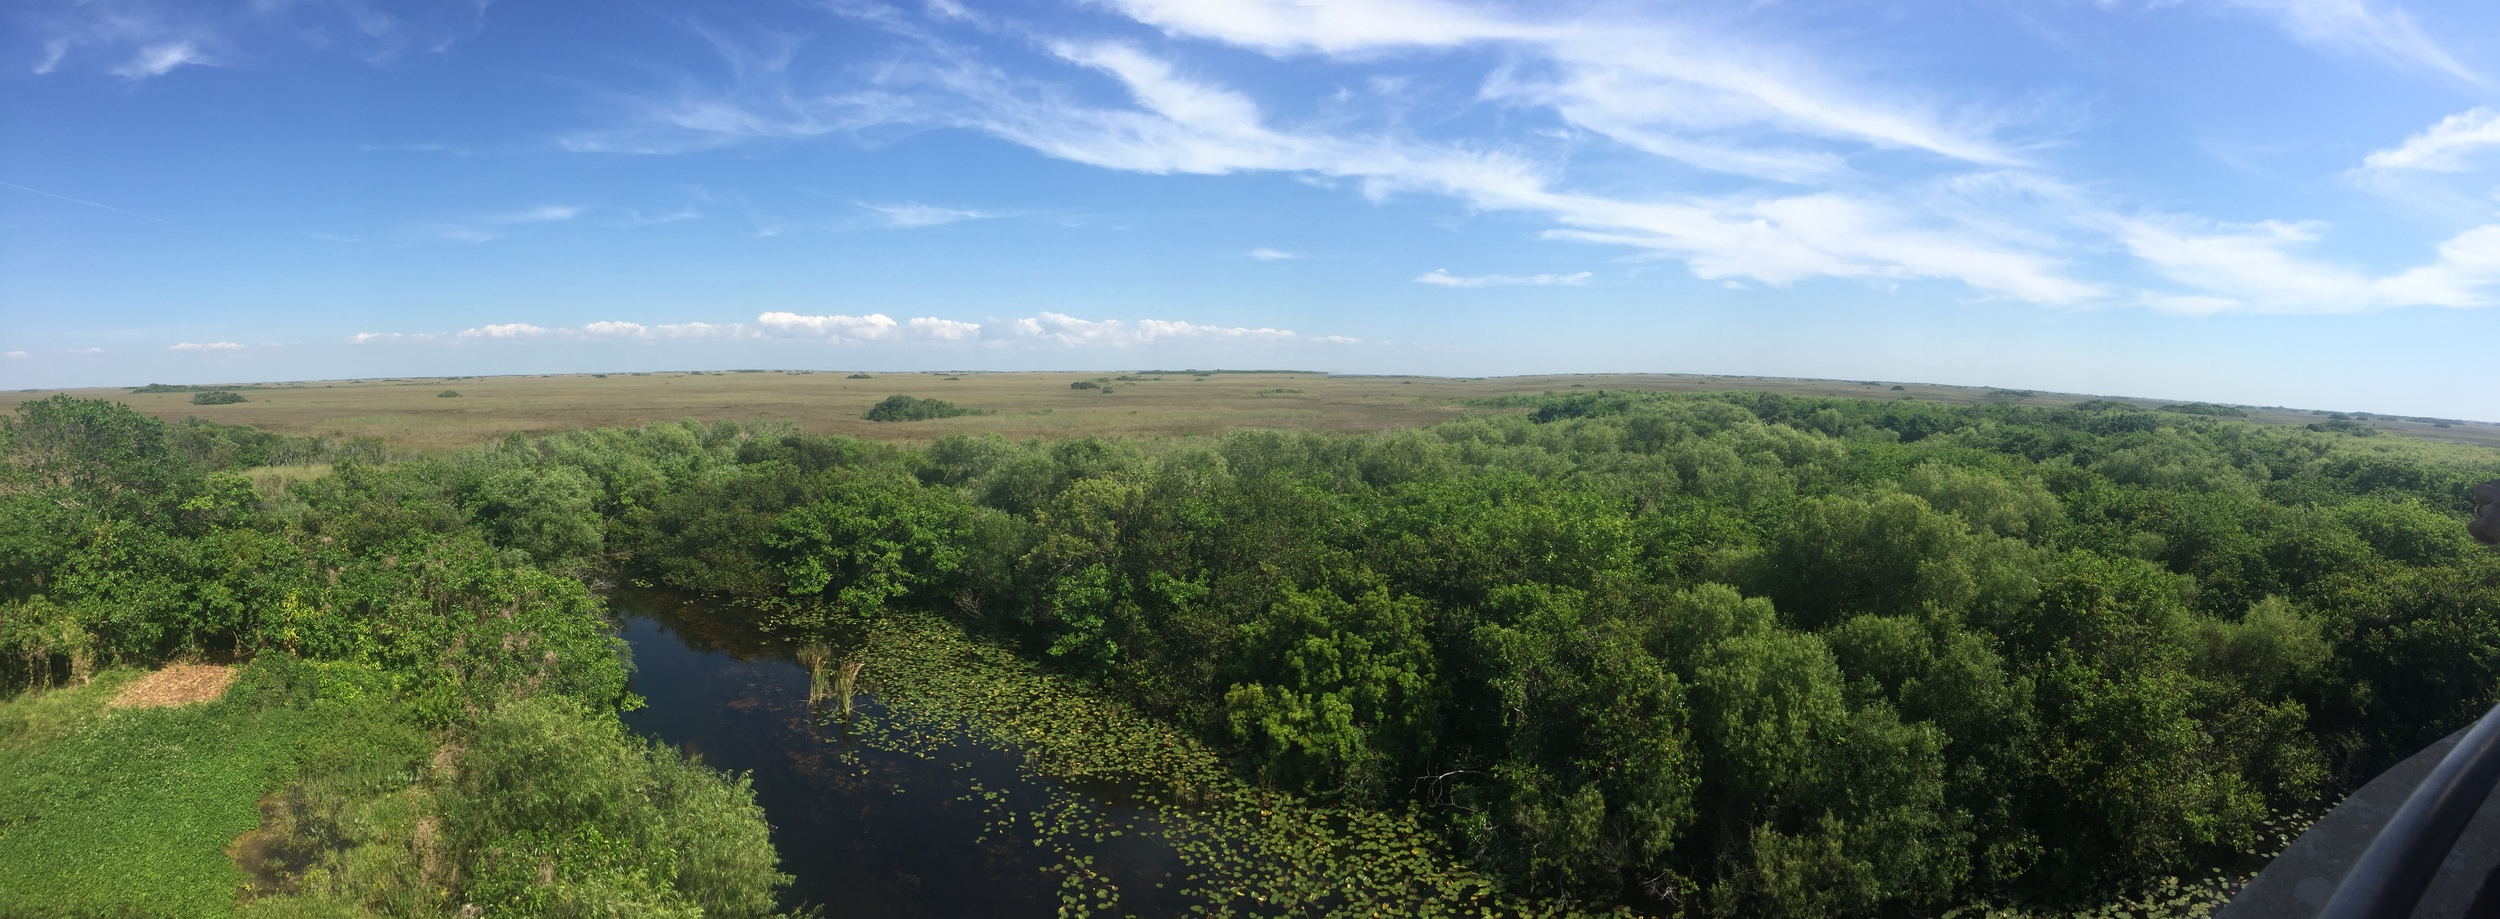 Everglades wetlands from Shark Valley Observation deck, photo by Amy Beth Wright.